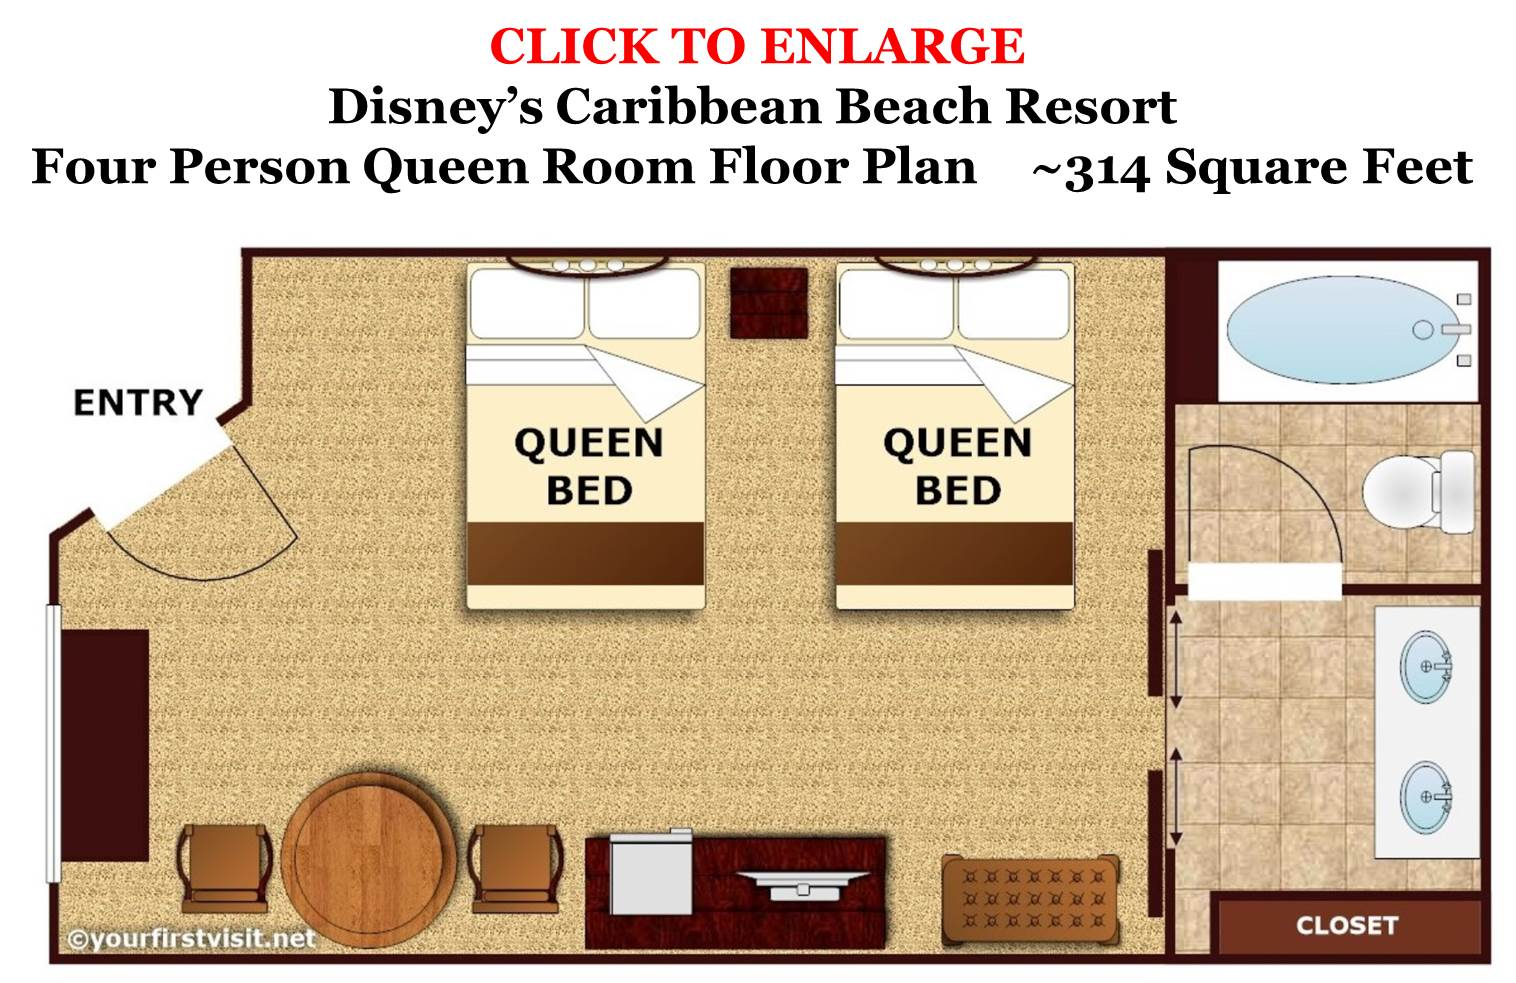 Four Person Queen Room Floor Plan Disney's Caribbean Beach Resort from yourfirstvisit.net